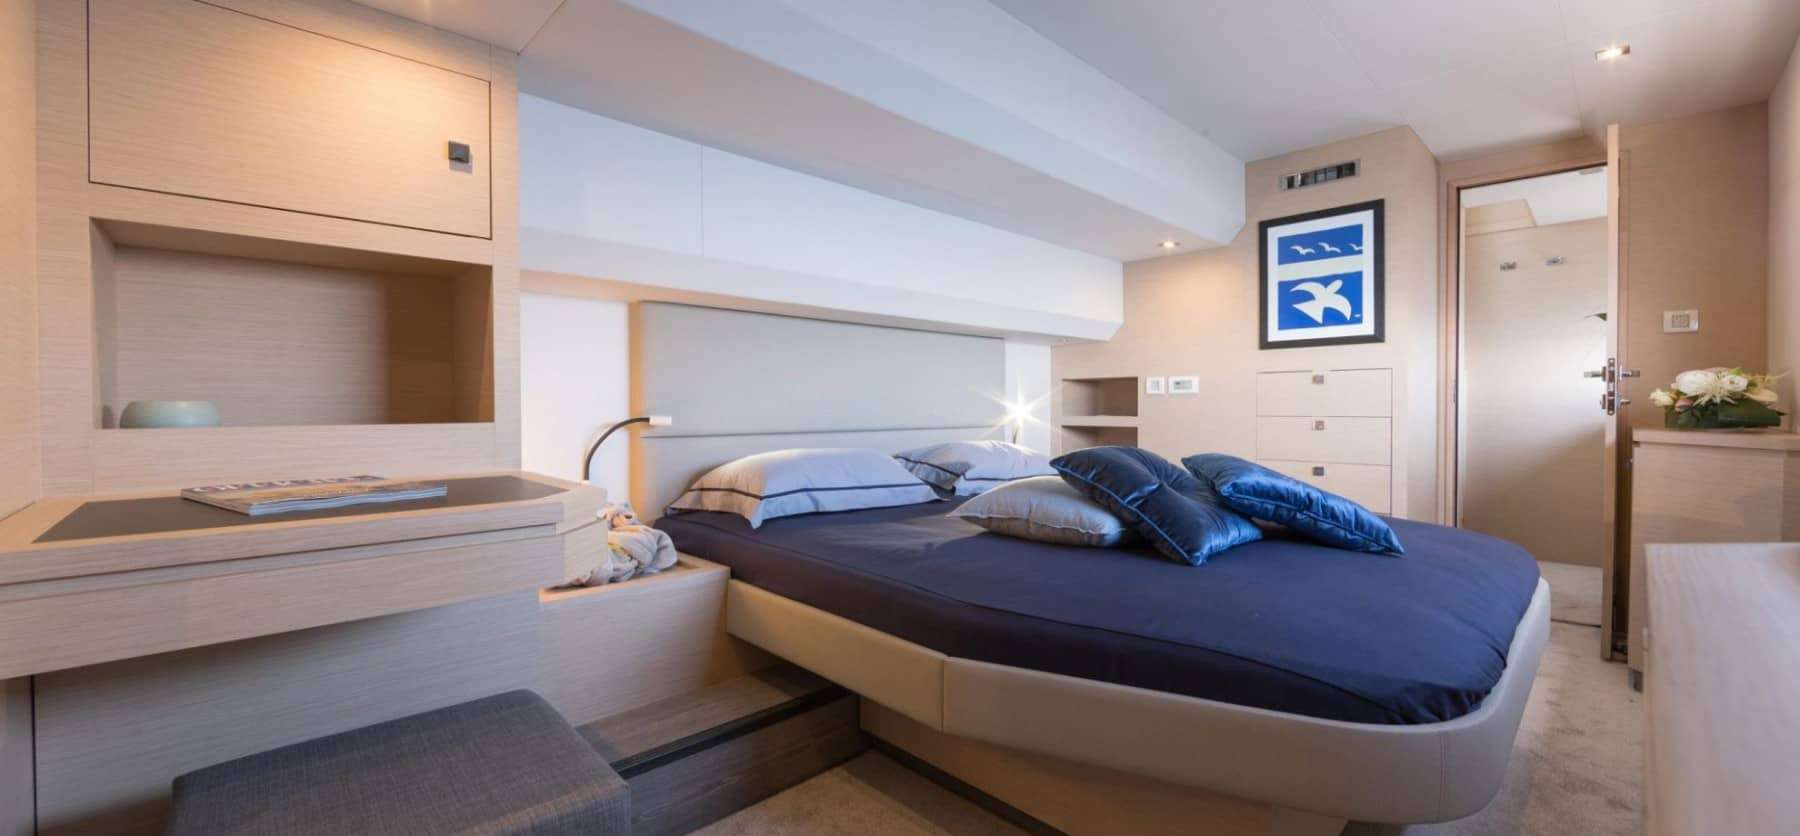 Spacious and elegant cabin of the Fountaine Pajot Motor Yacht 44 with a made bed with blue sheets